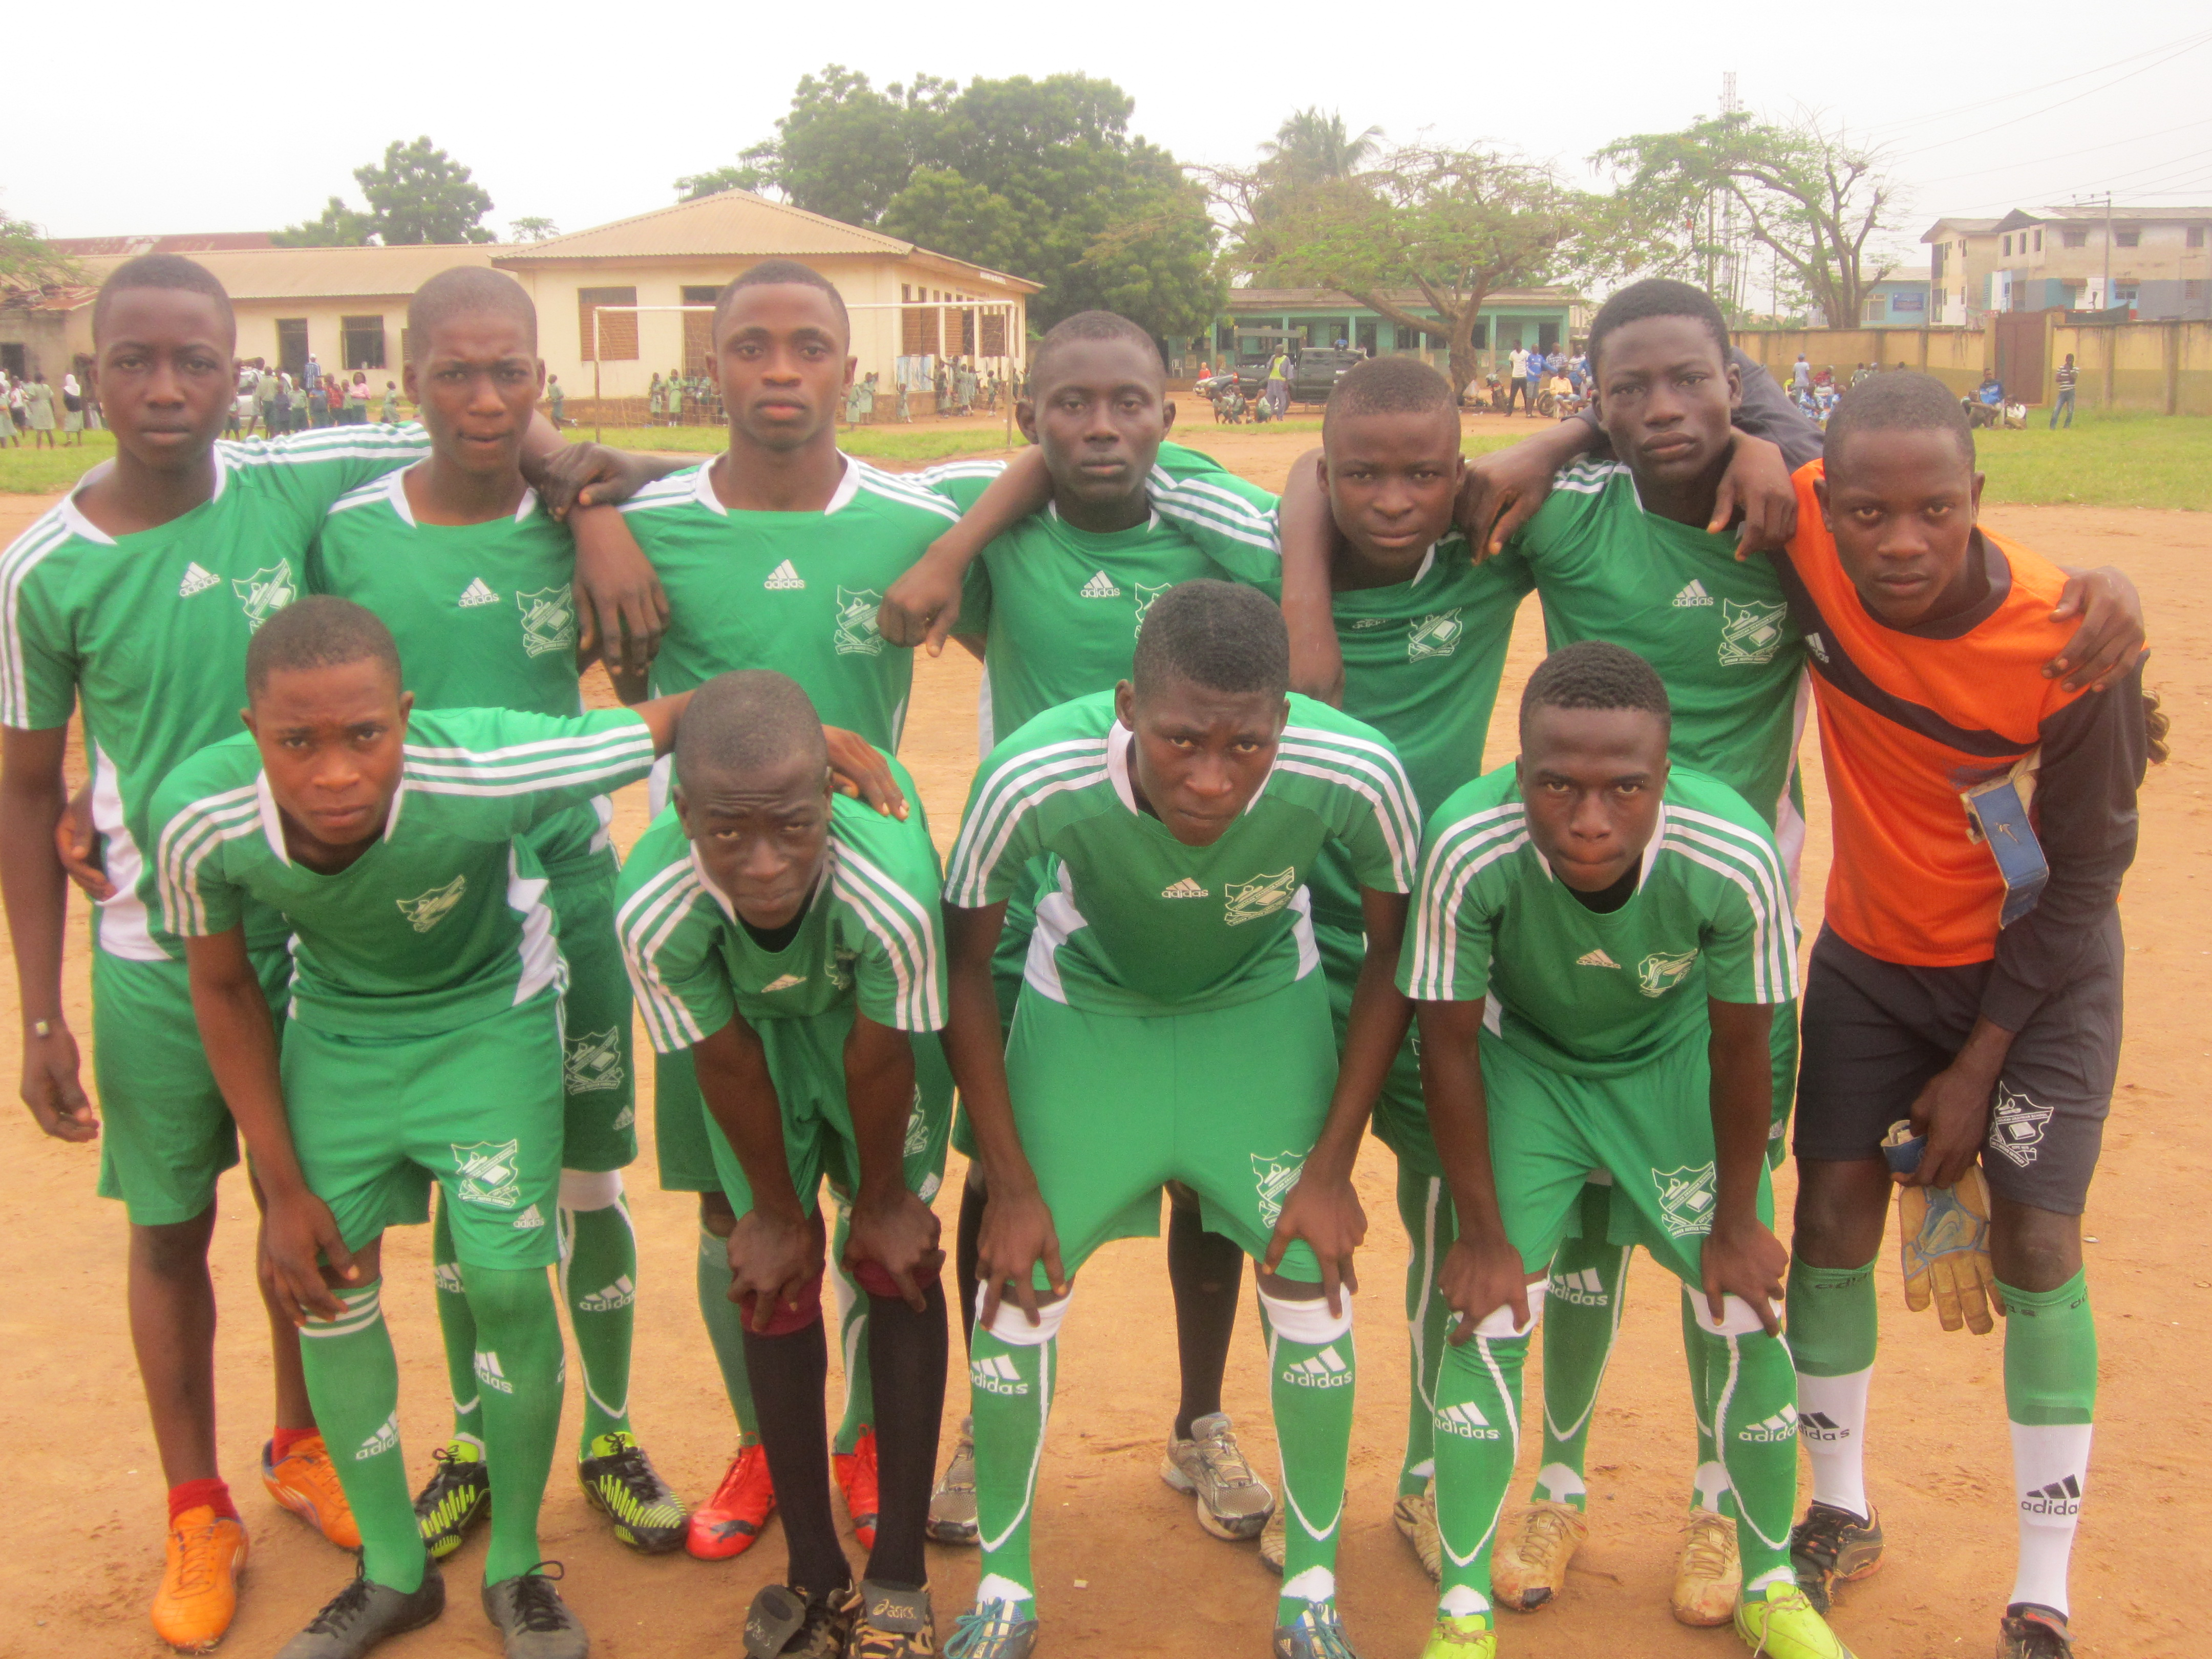 Anglican Grammar School, Ota Defeats St. Stephen High School, Ado In The 2017 GT Cup, To Represent Ado-Odo/Ota At State Level